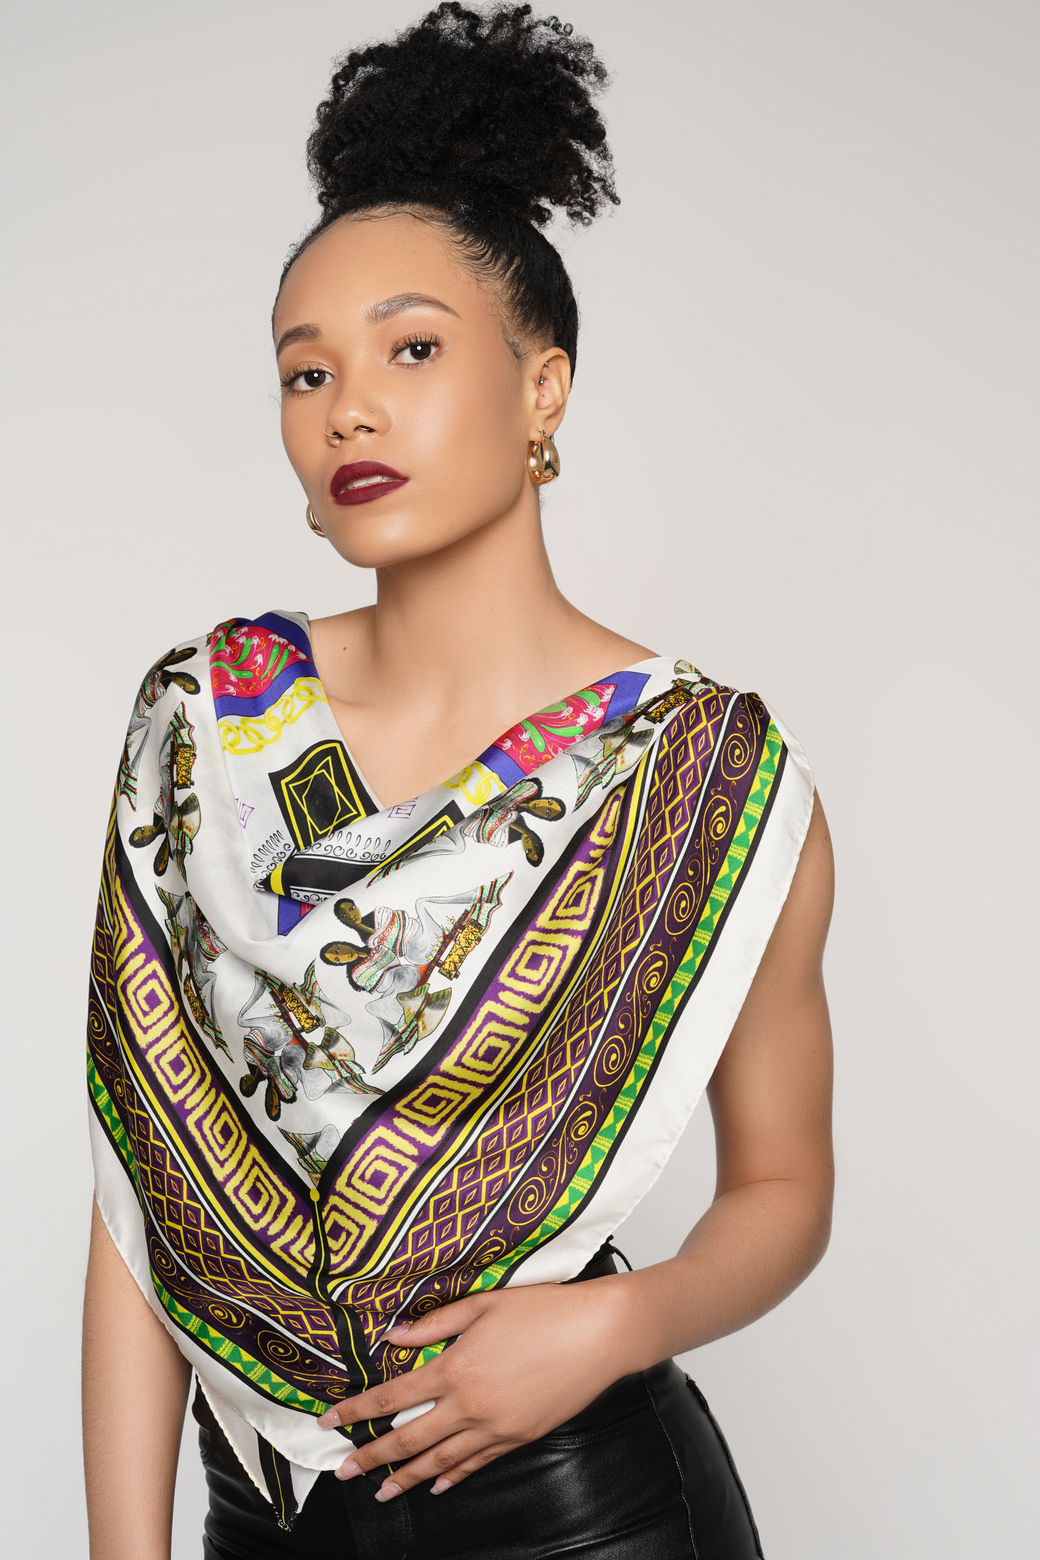 Silks Of Sheba Announces Physical Stores in South Africa and New York For Its African-inspired Scarf Designs